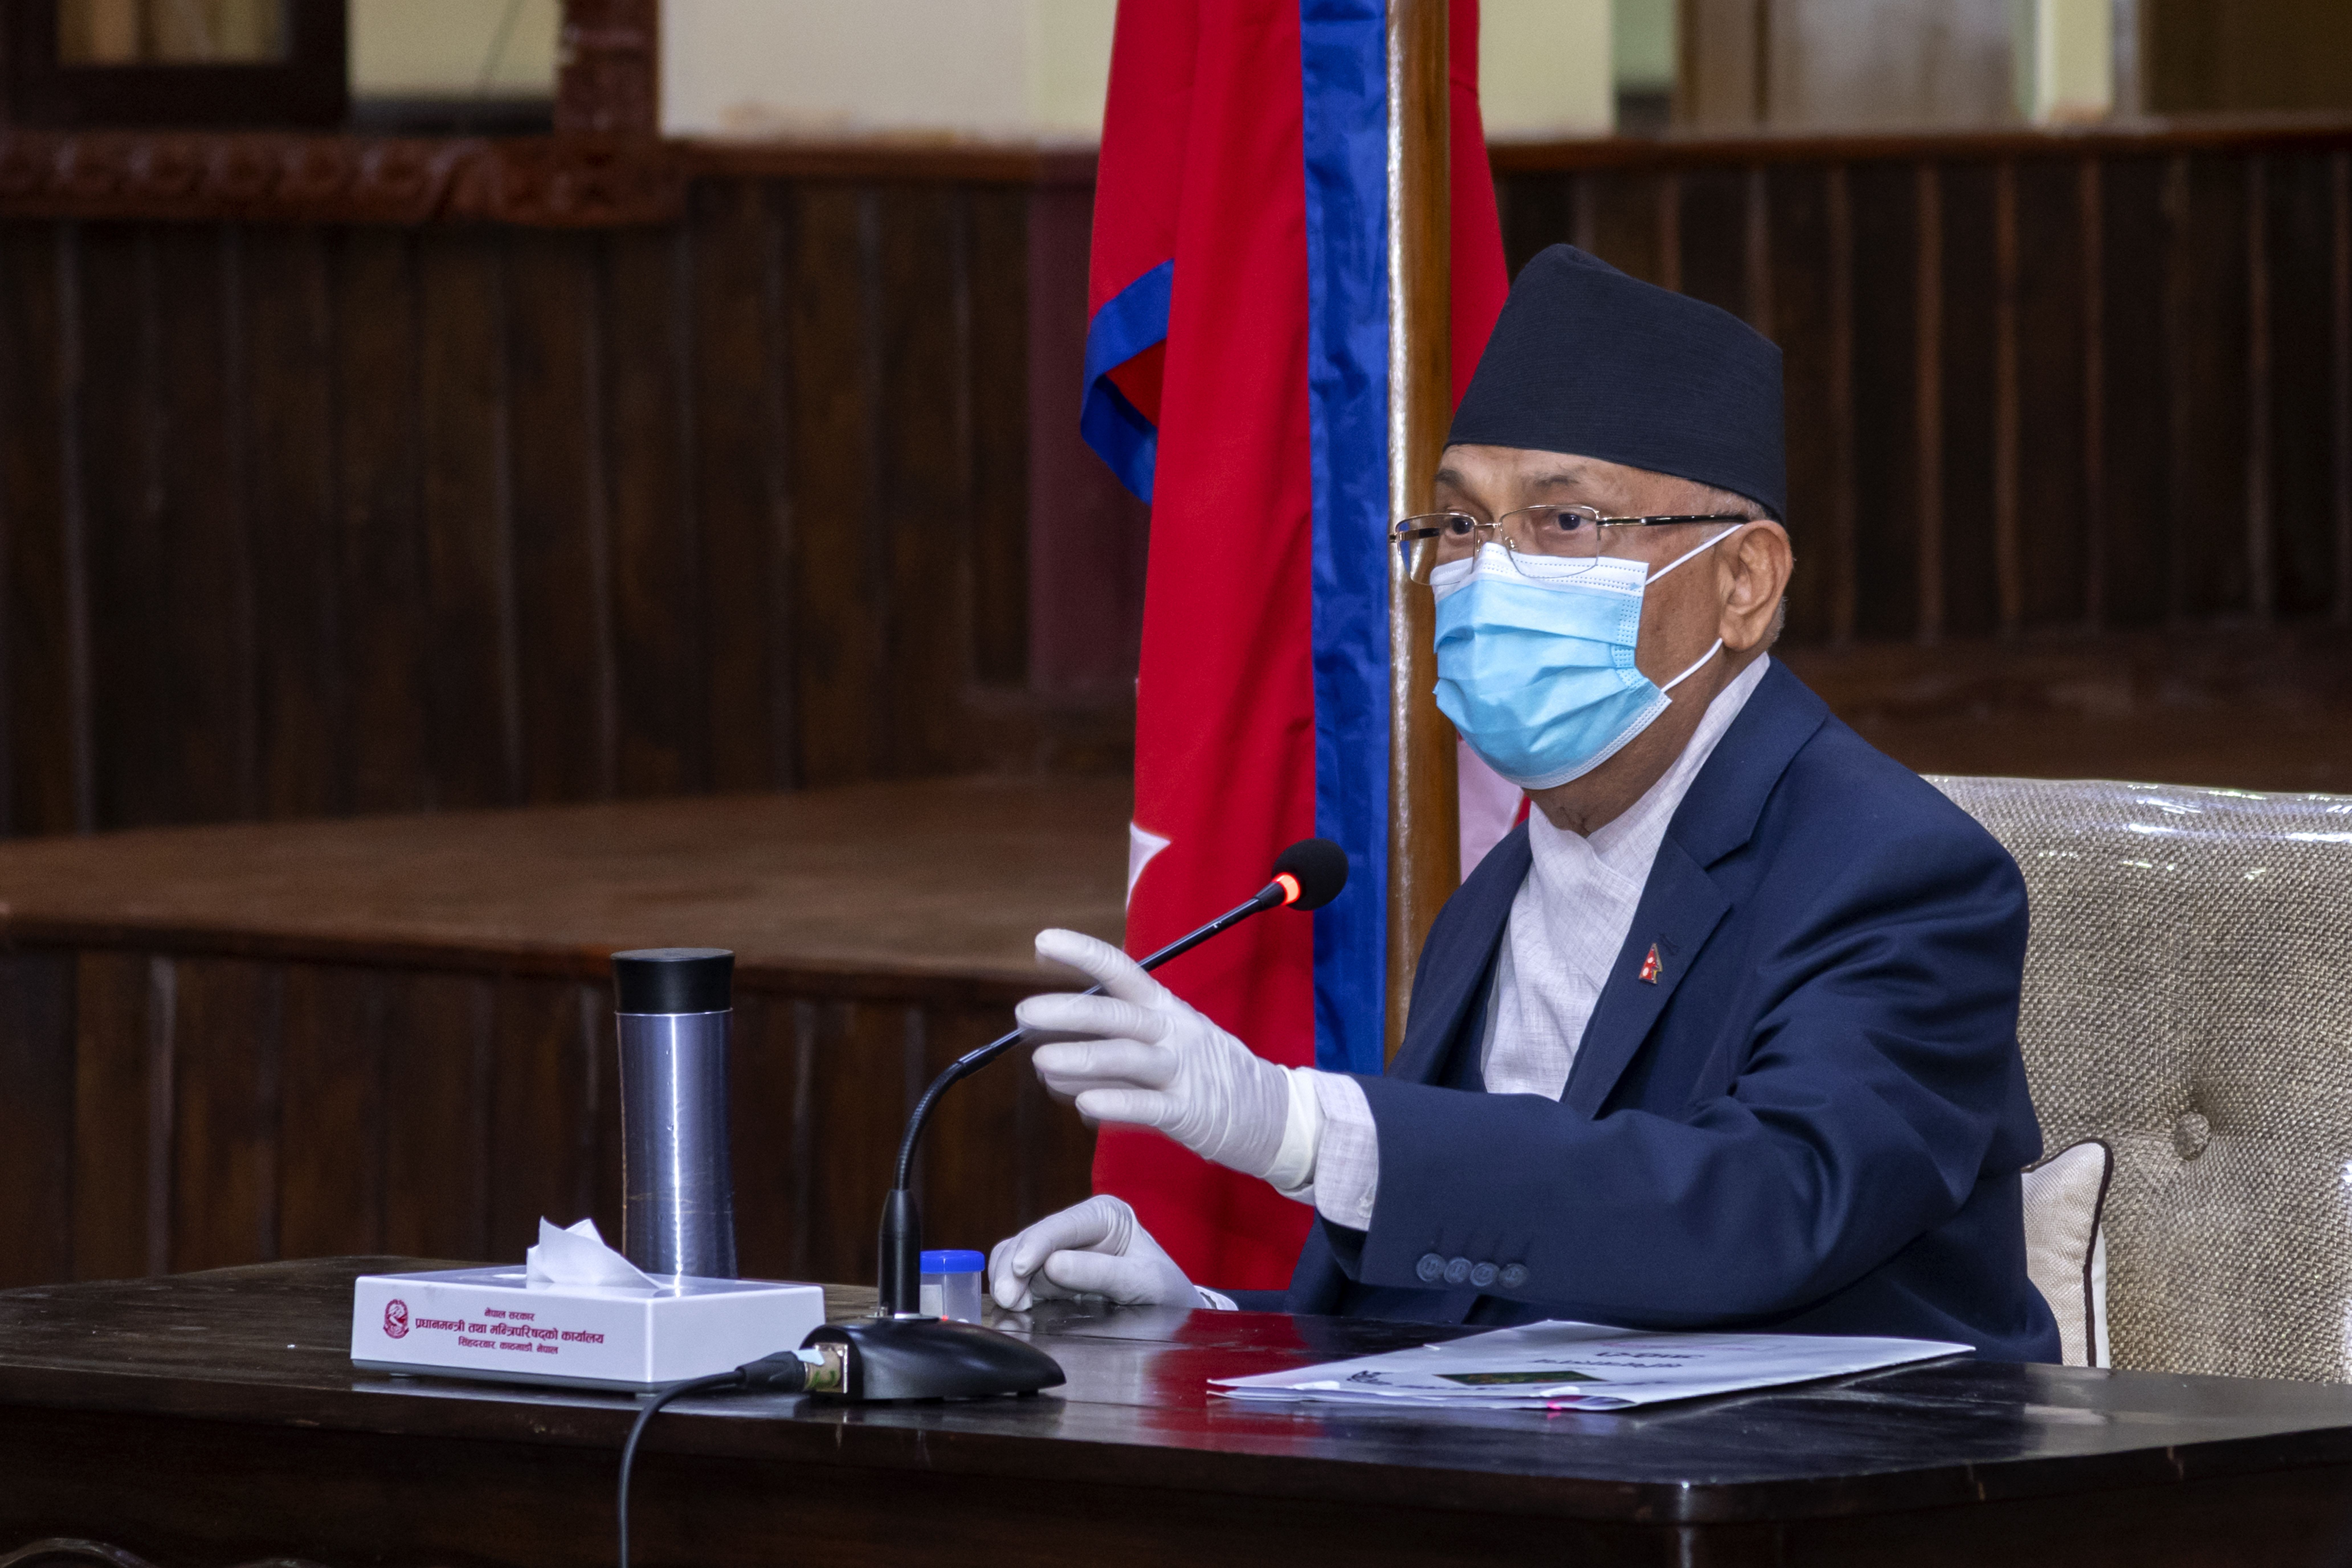 Prime Minister KP Sharma Oli at the cabinet meeting, at the Prime Minister's official residence in Baluwatar, held on Saturday, May 30, 2020. Photo Courtesy: Rajan Kafle/Prime Minister's Secretariat